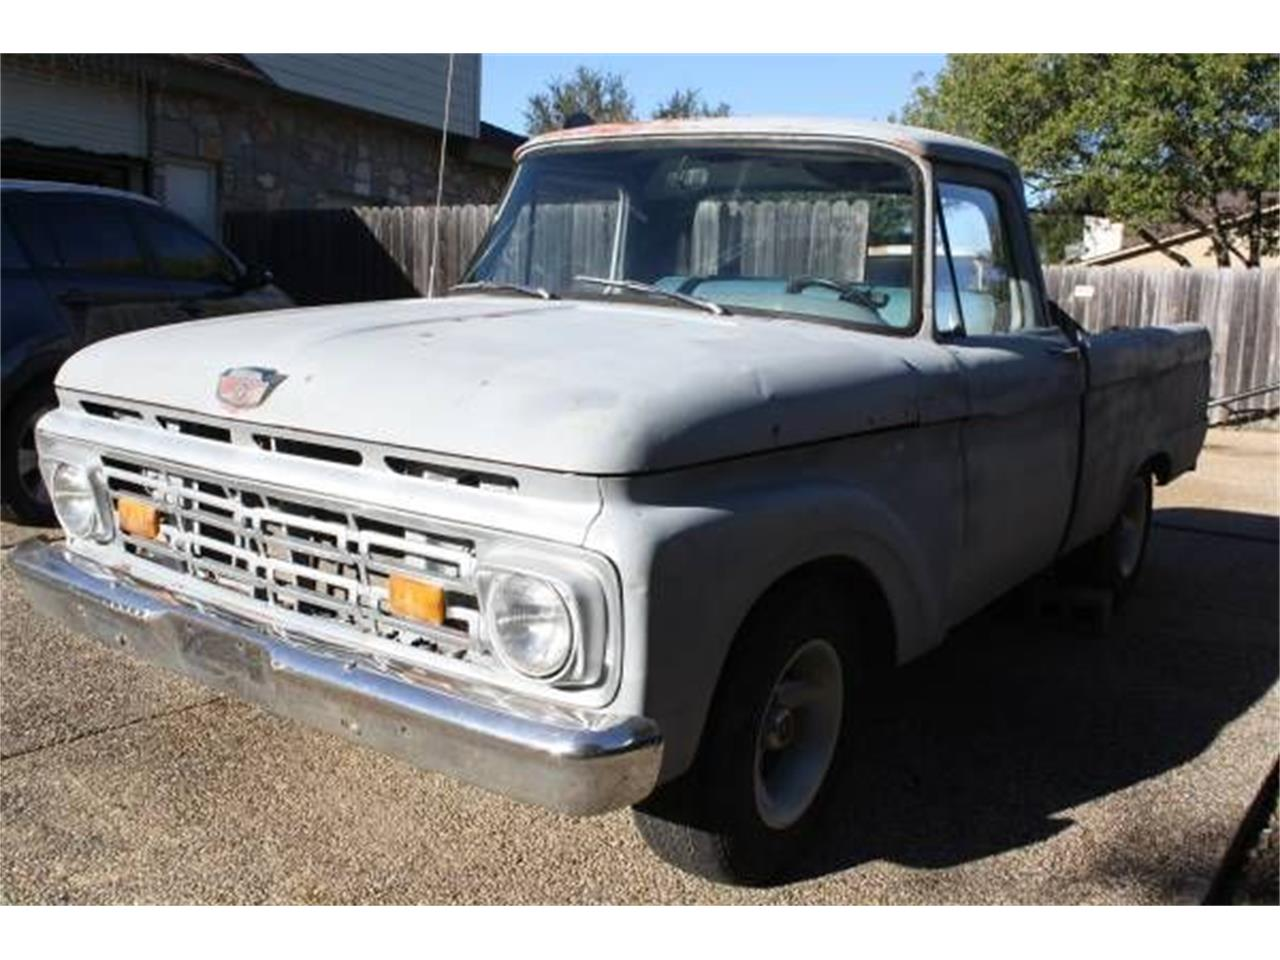 Large picture of 65 f100 o2gv